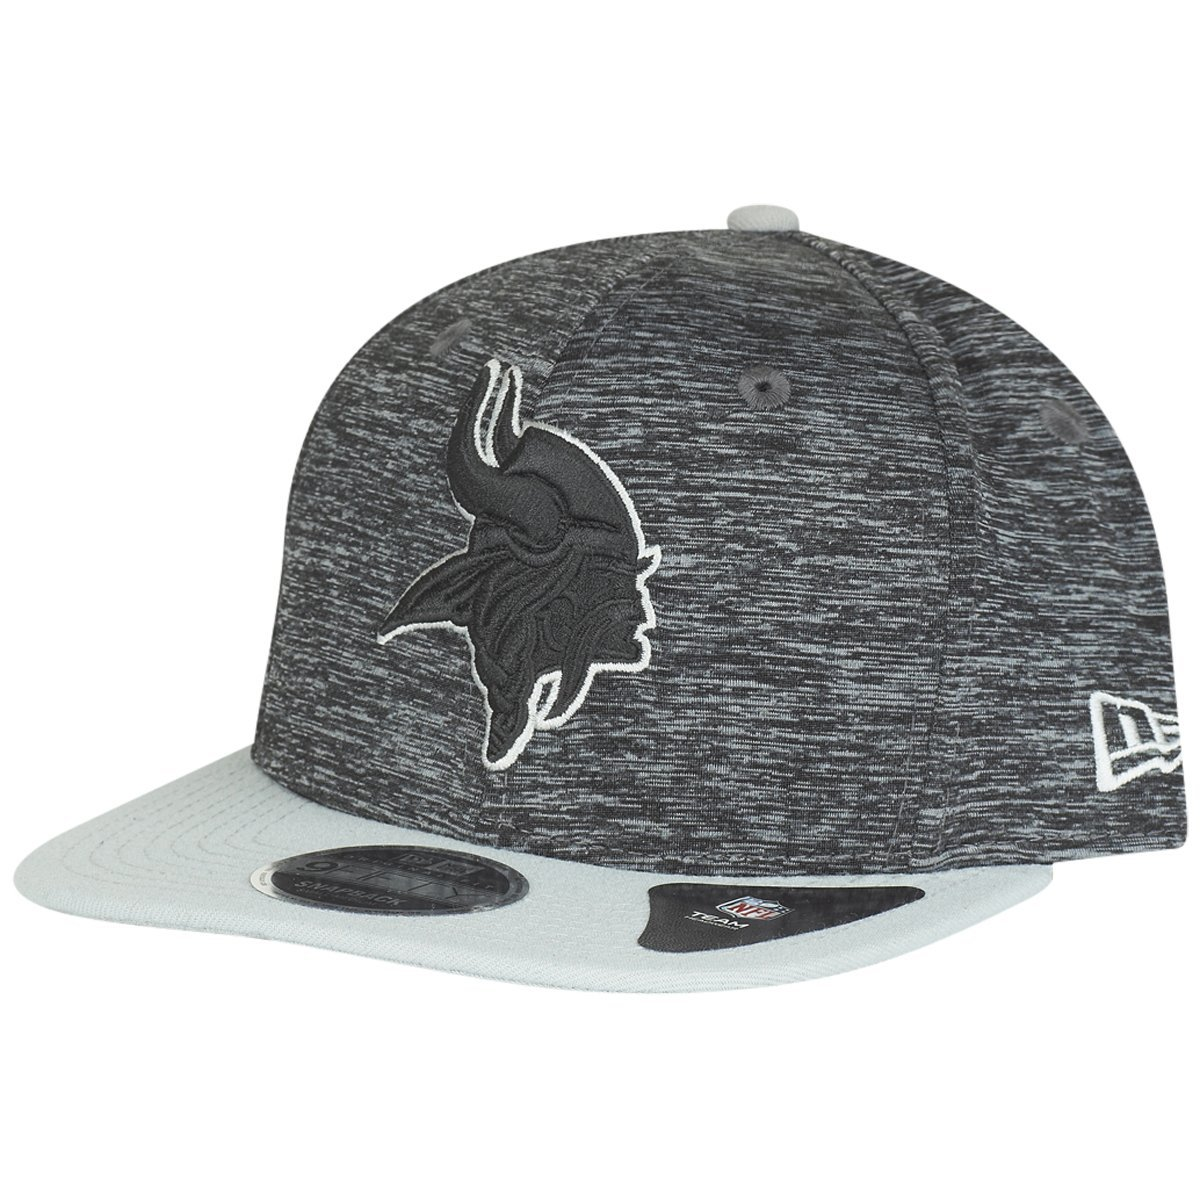 New Era 9Fifty Snapback Cap Jersey Minnesota Vikings